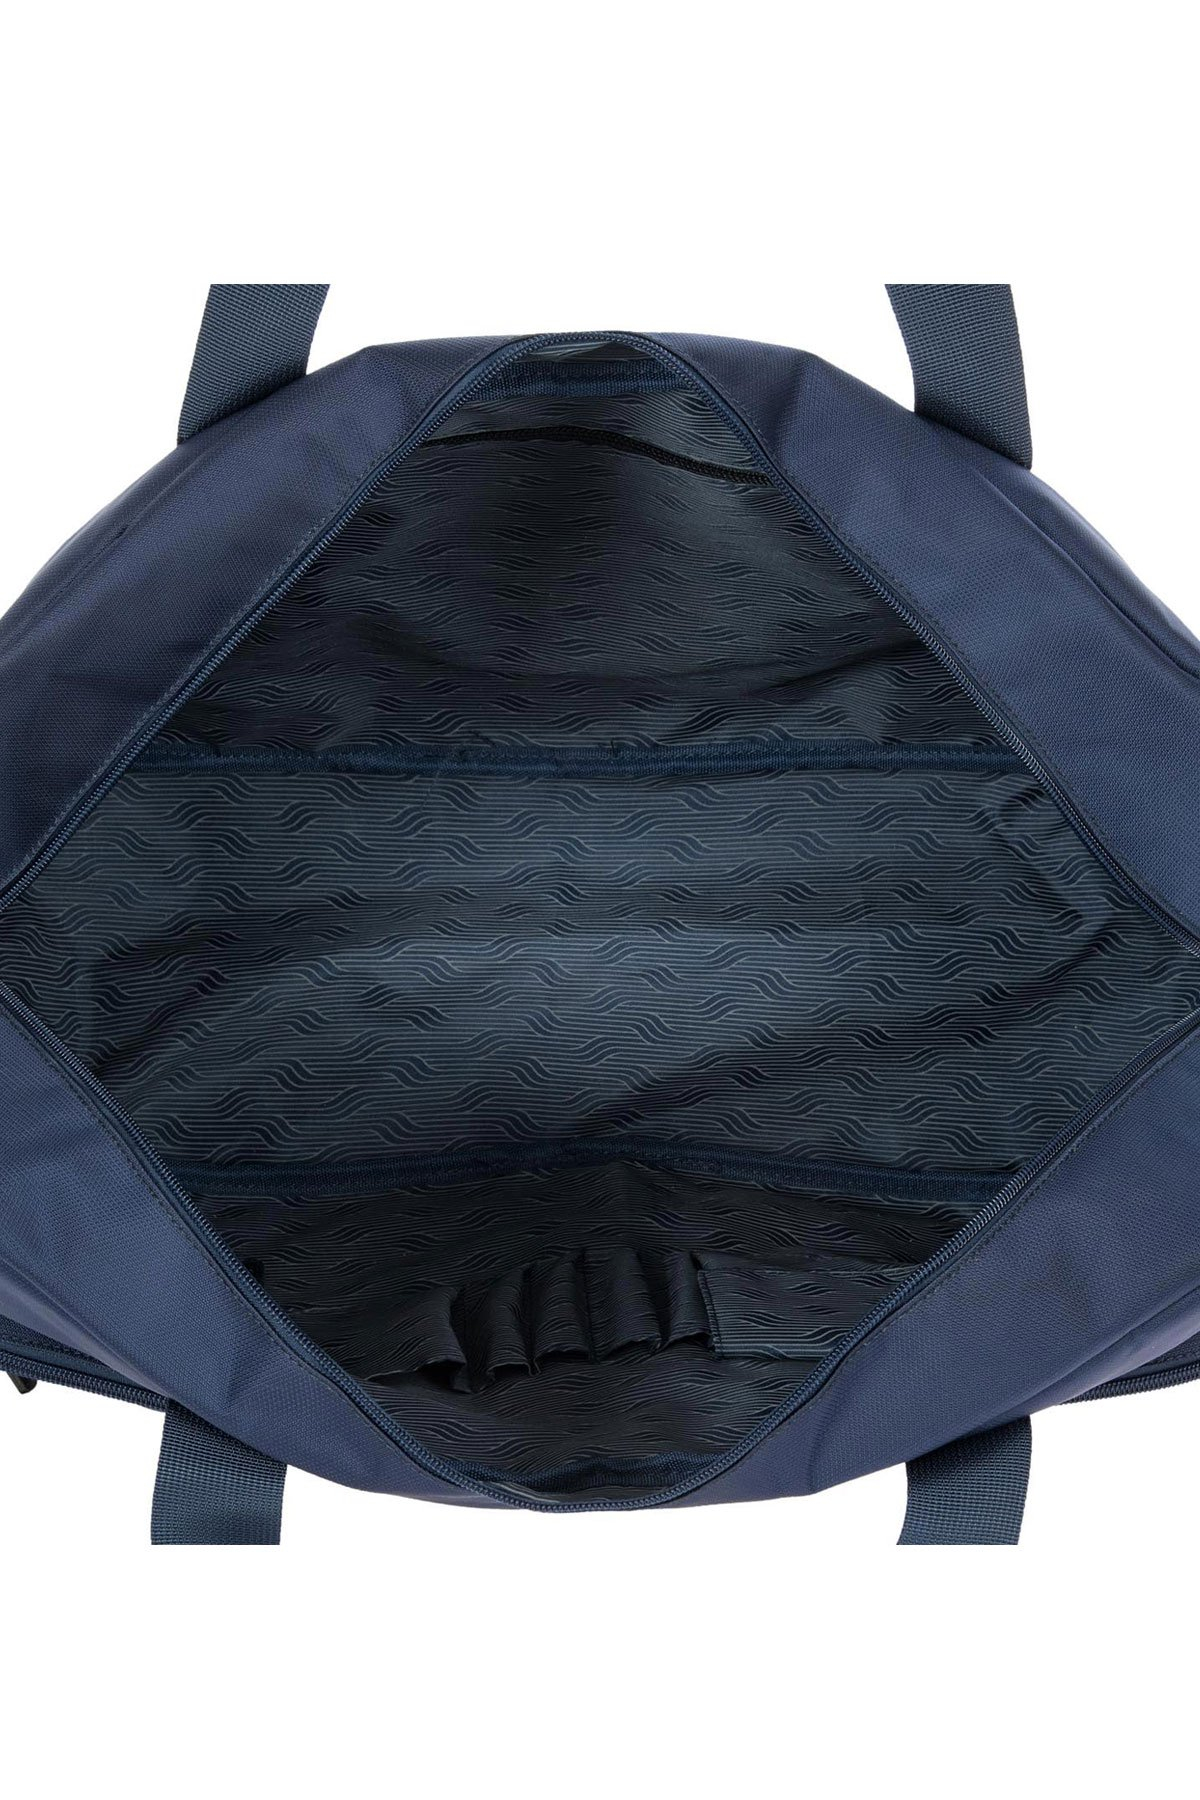 0260 Bric's Itaca Travel Bag 47x27x19 cm Blue